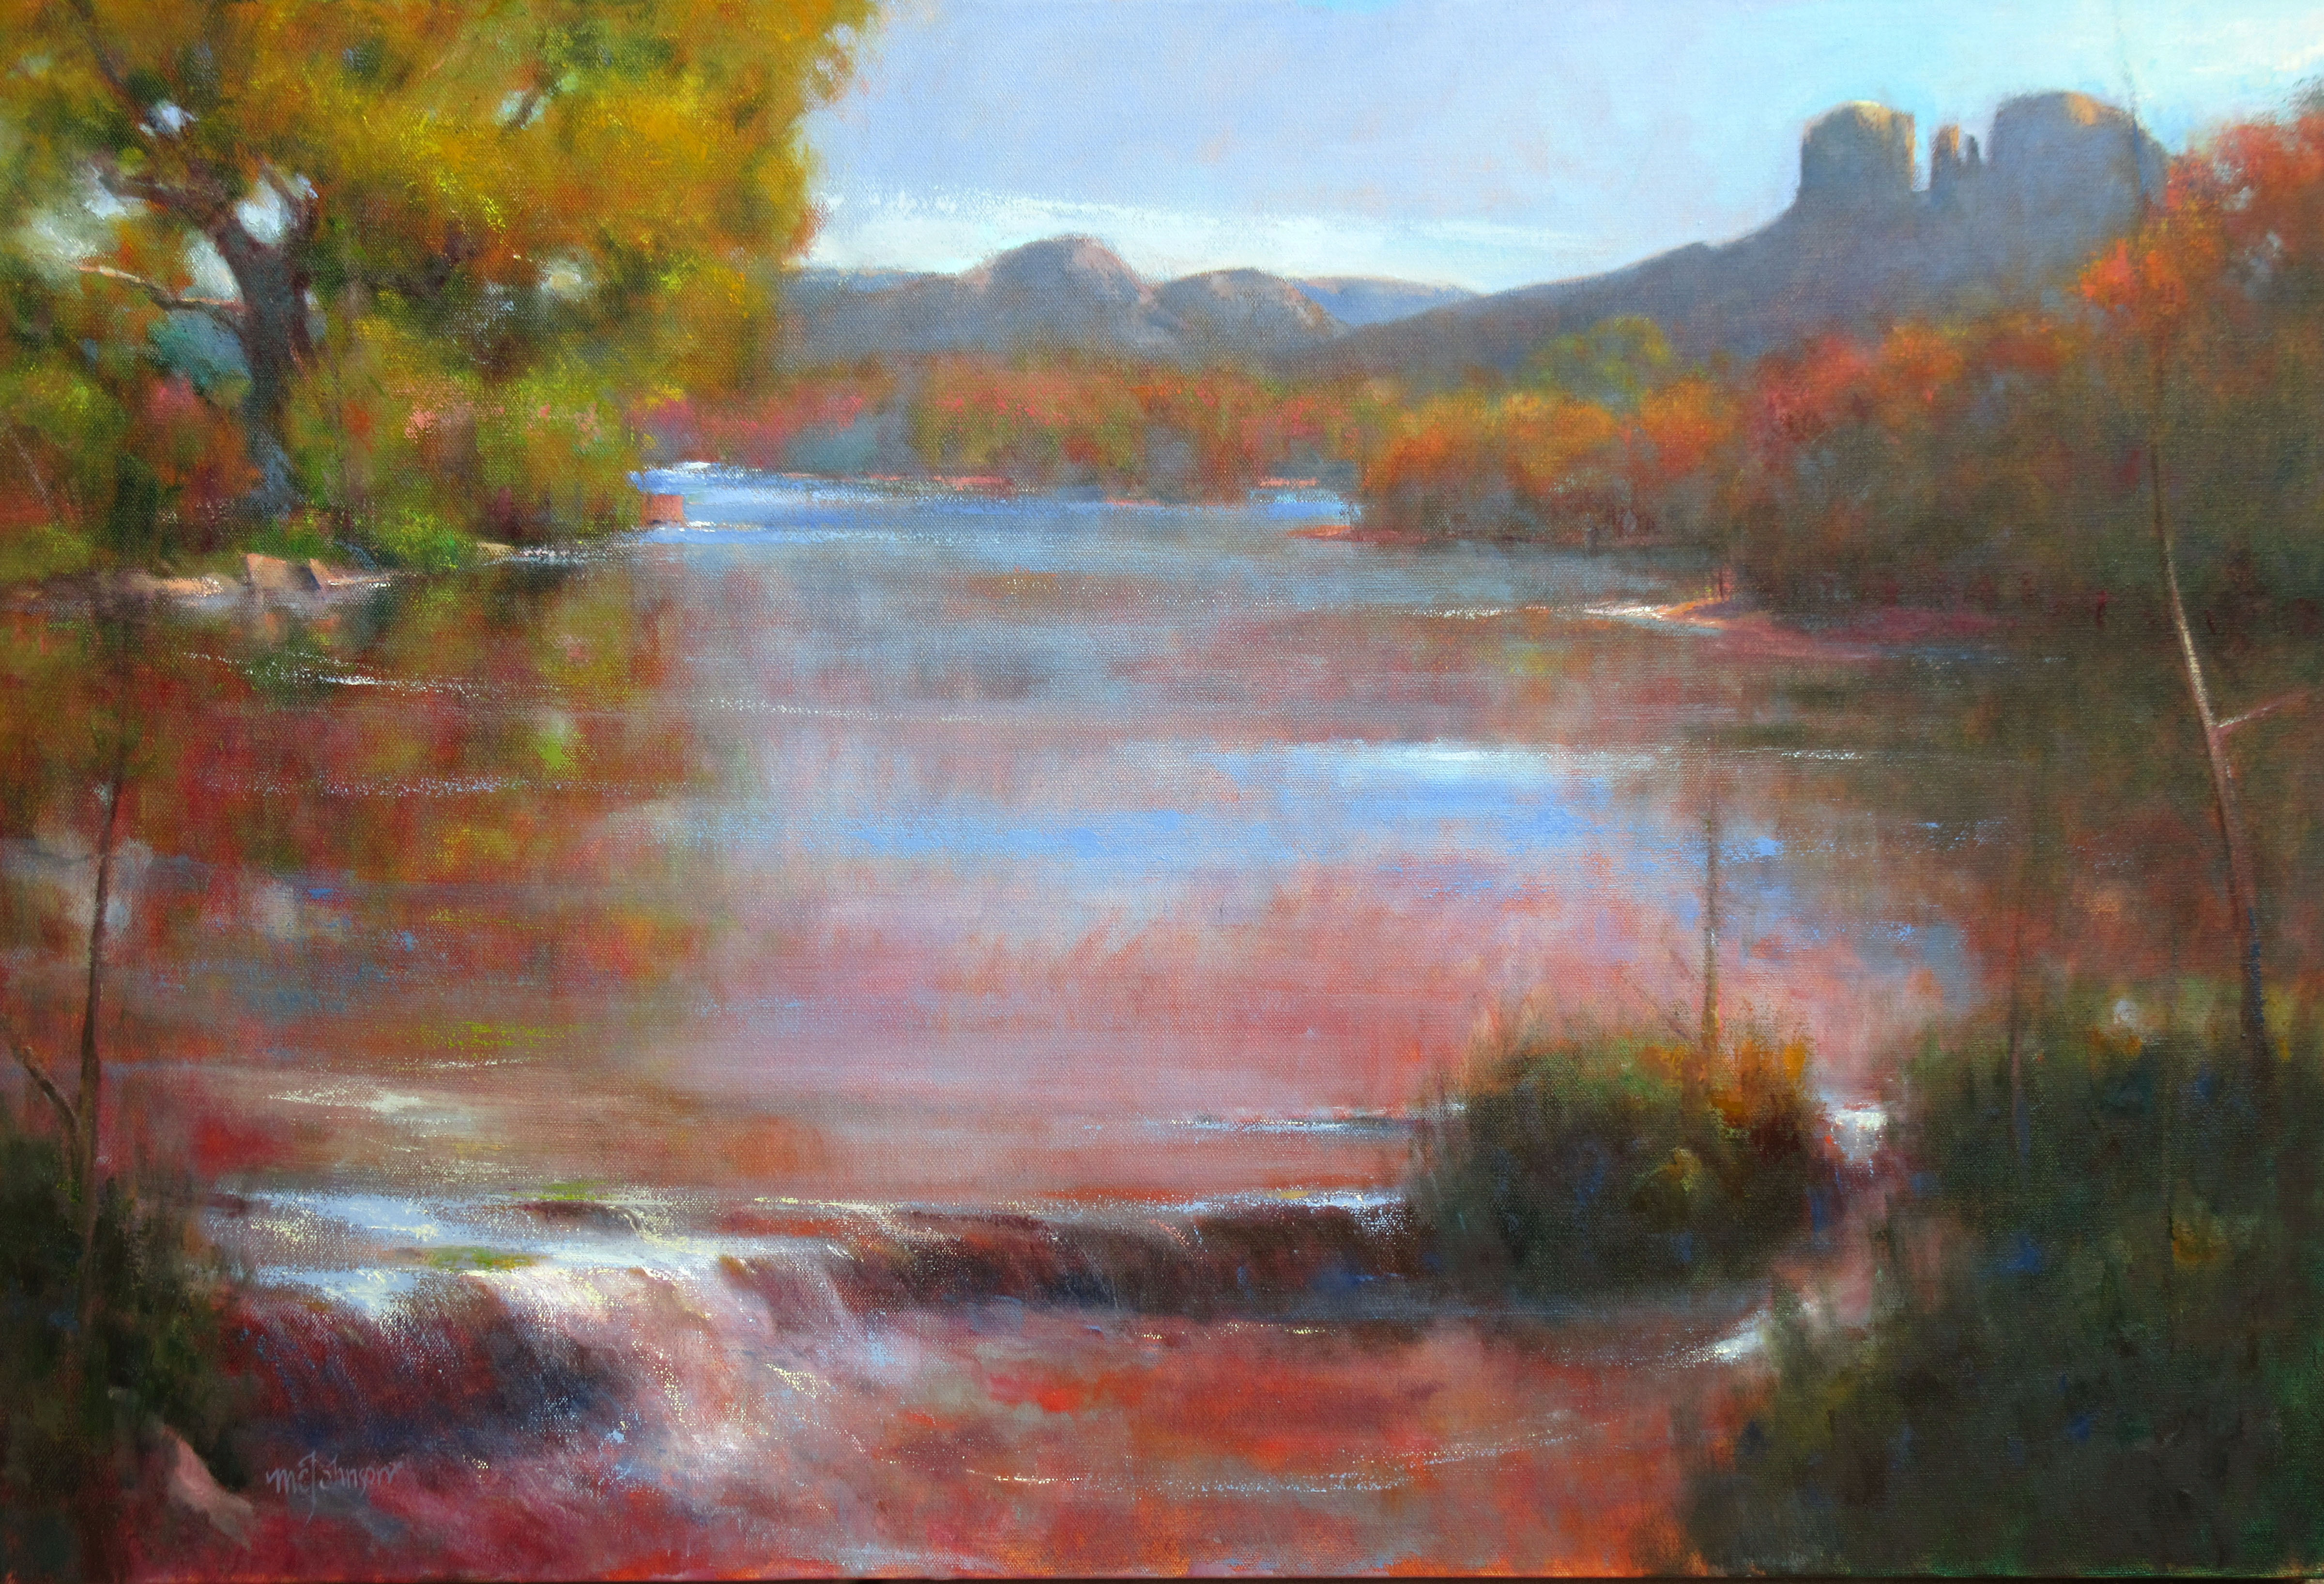 Autumn Turns by  Michael Chesley Johnson - Masterpiece Online